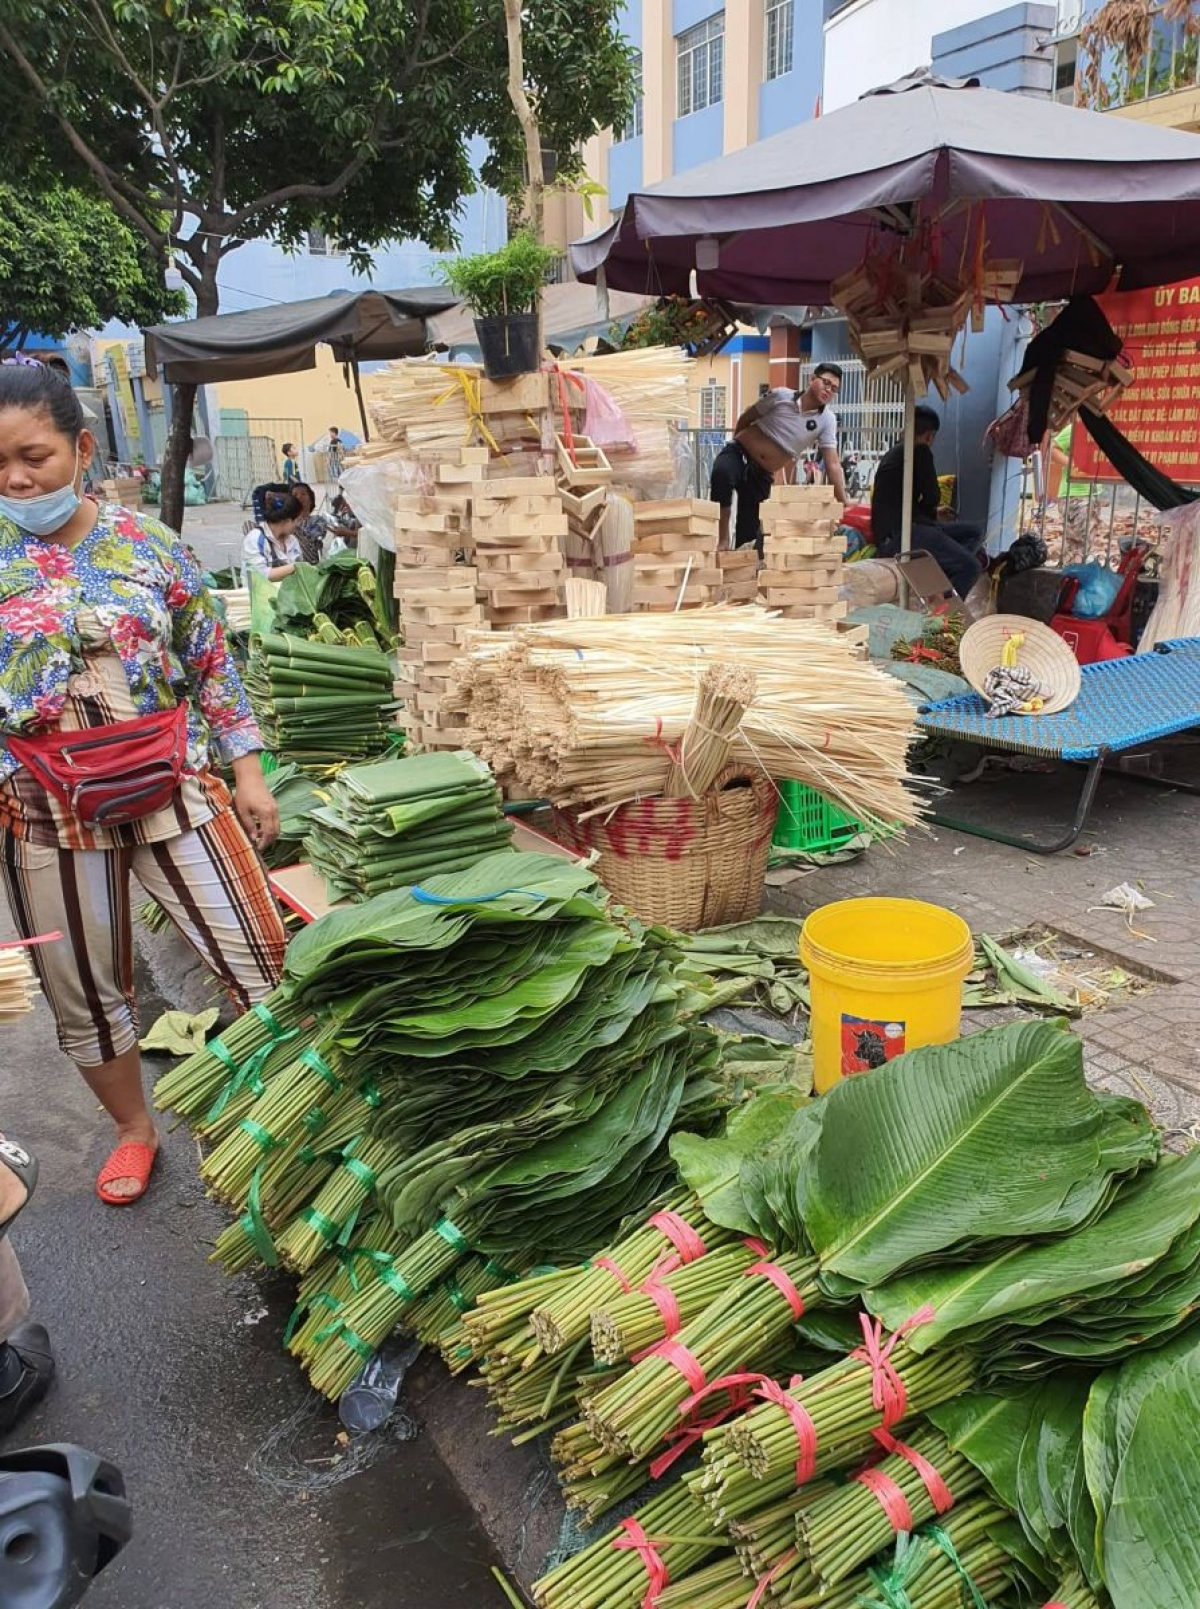 The market, the biggest of its kind in HCM City, often opens from the 15th day of the 12th lunar month and lasts several days before the start of Tet. A bunch typically contains 10 leaves costing between VND70,000 and VND80,000.